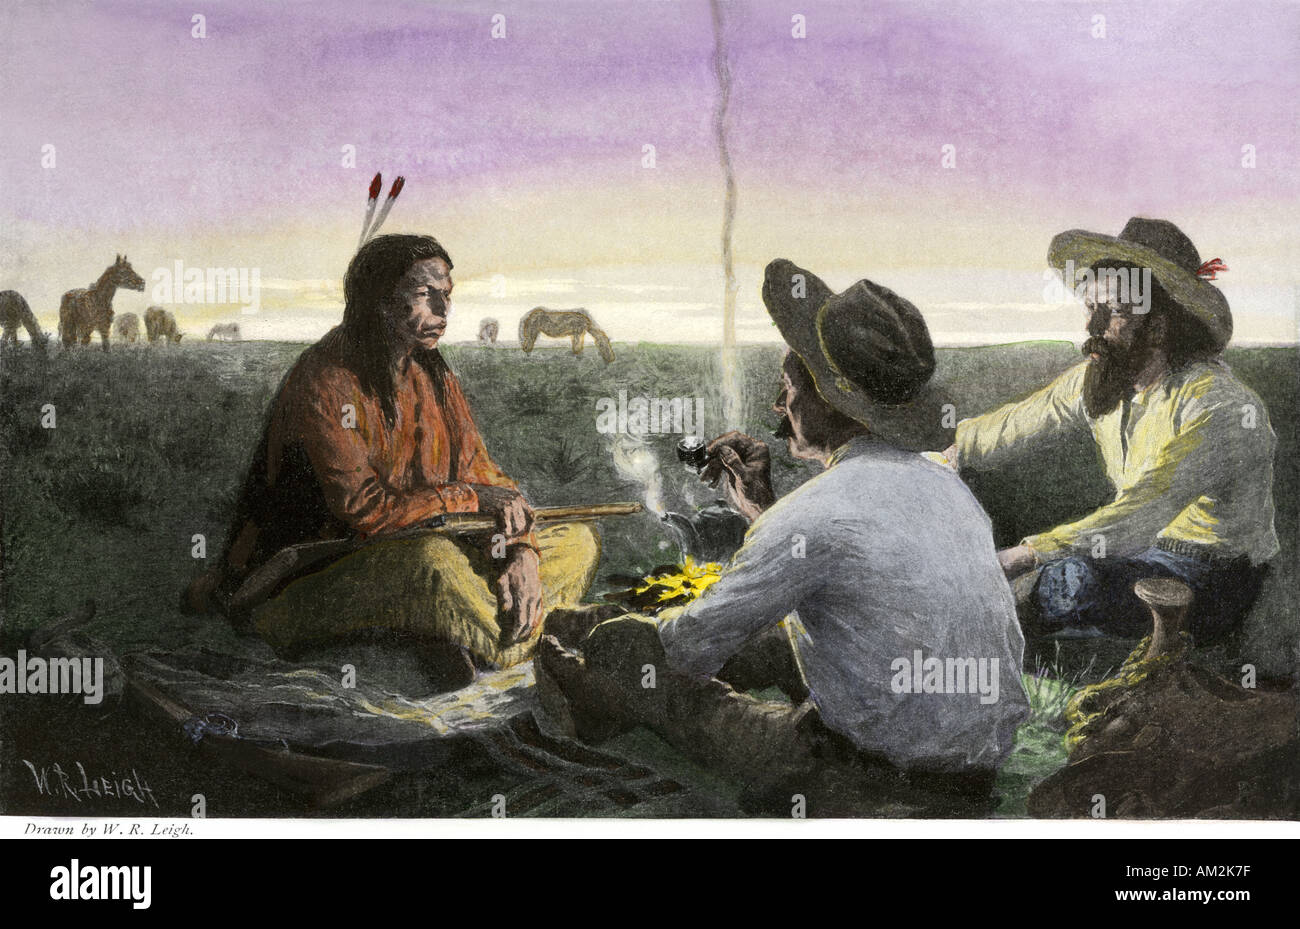 Native American joining cowboys at their campfire late 1800s. Hand-colored halftone of an illustration - Stock Image